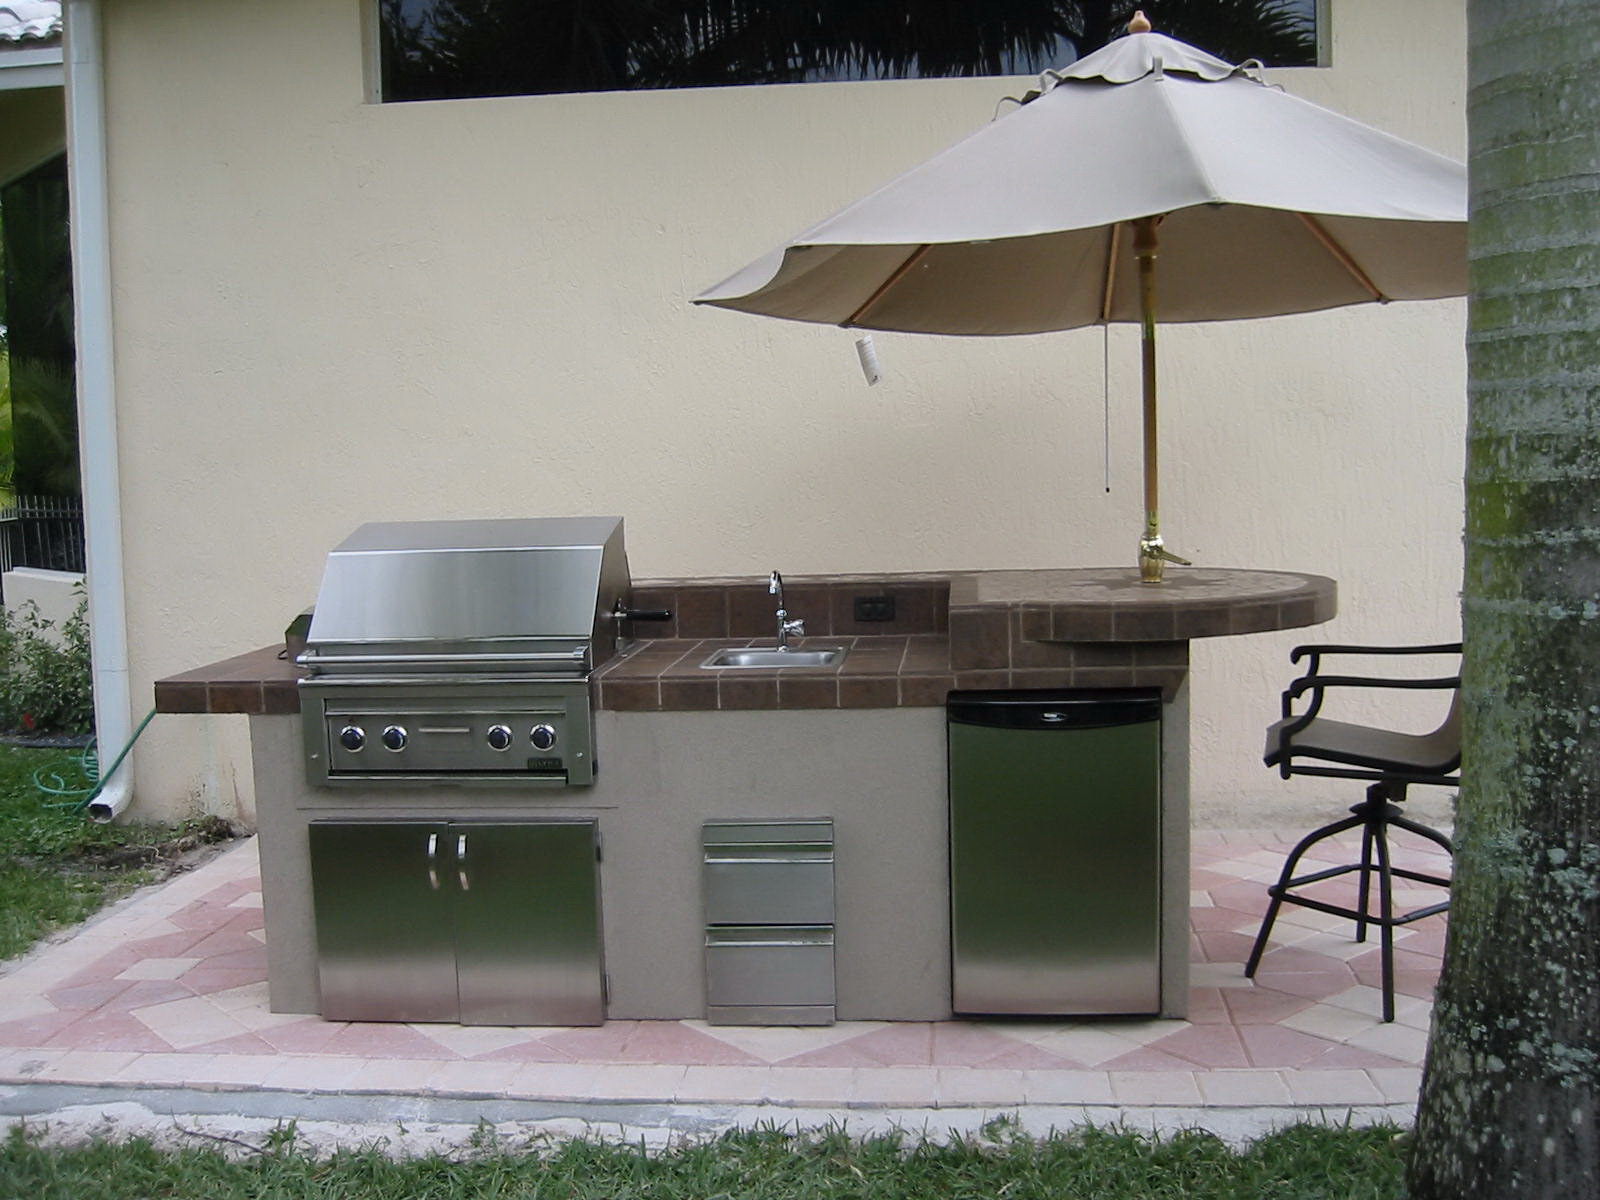 grills for outdoor kitchens short kitchen wall cabinets design images grill repair com barbeque